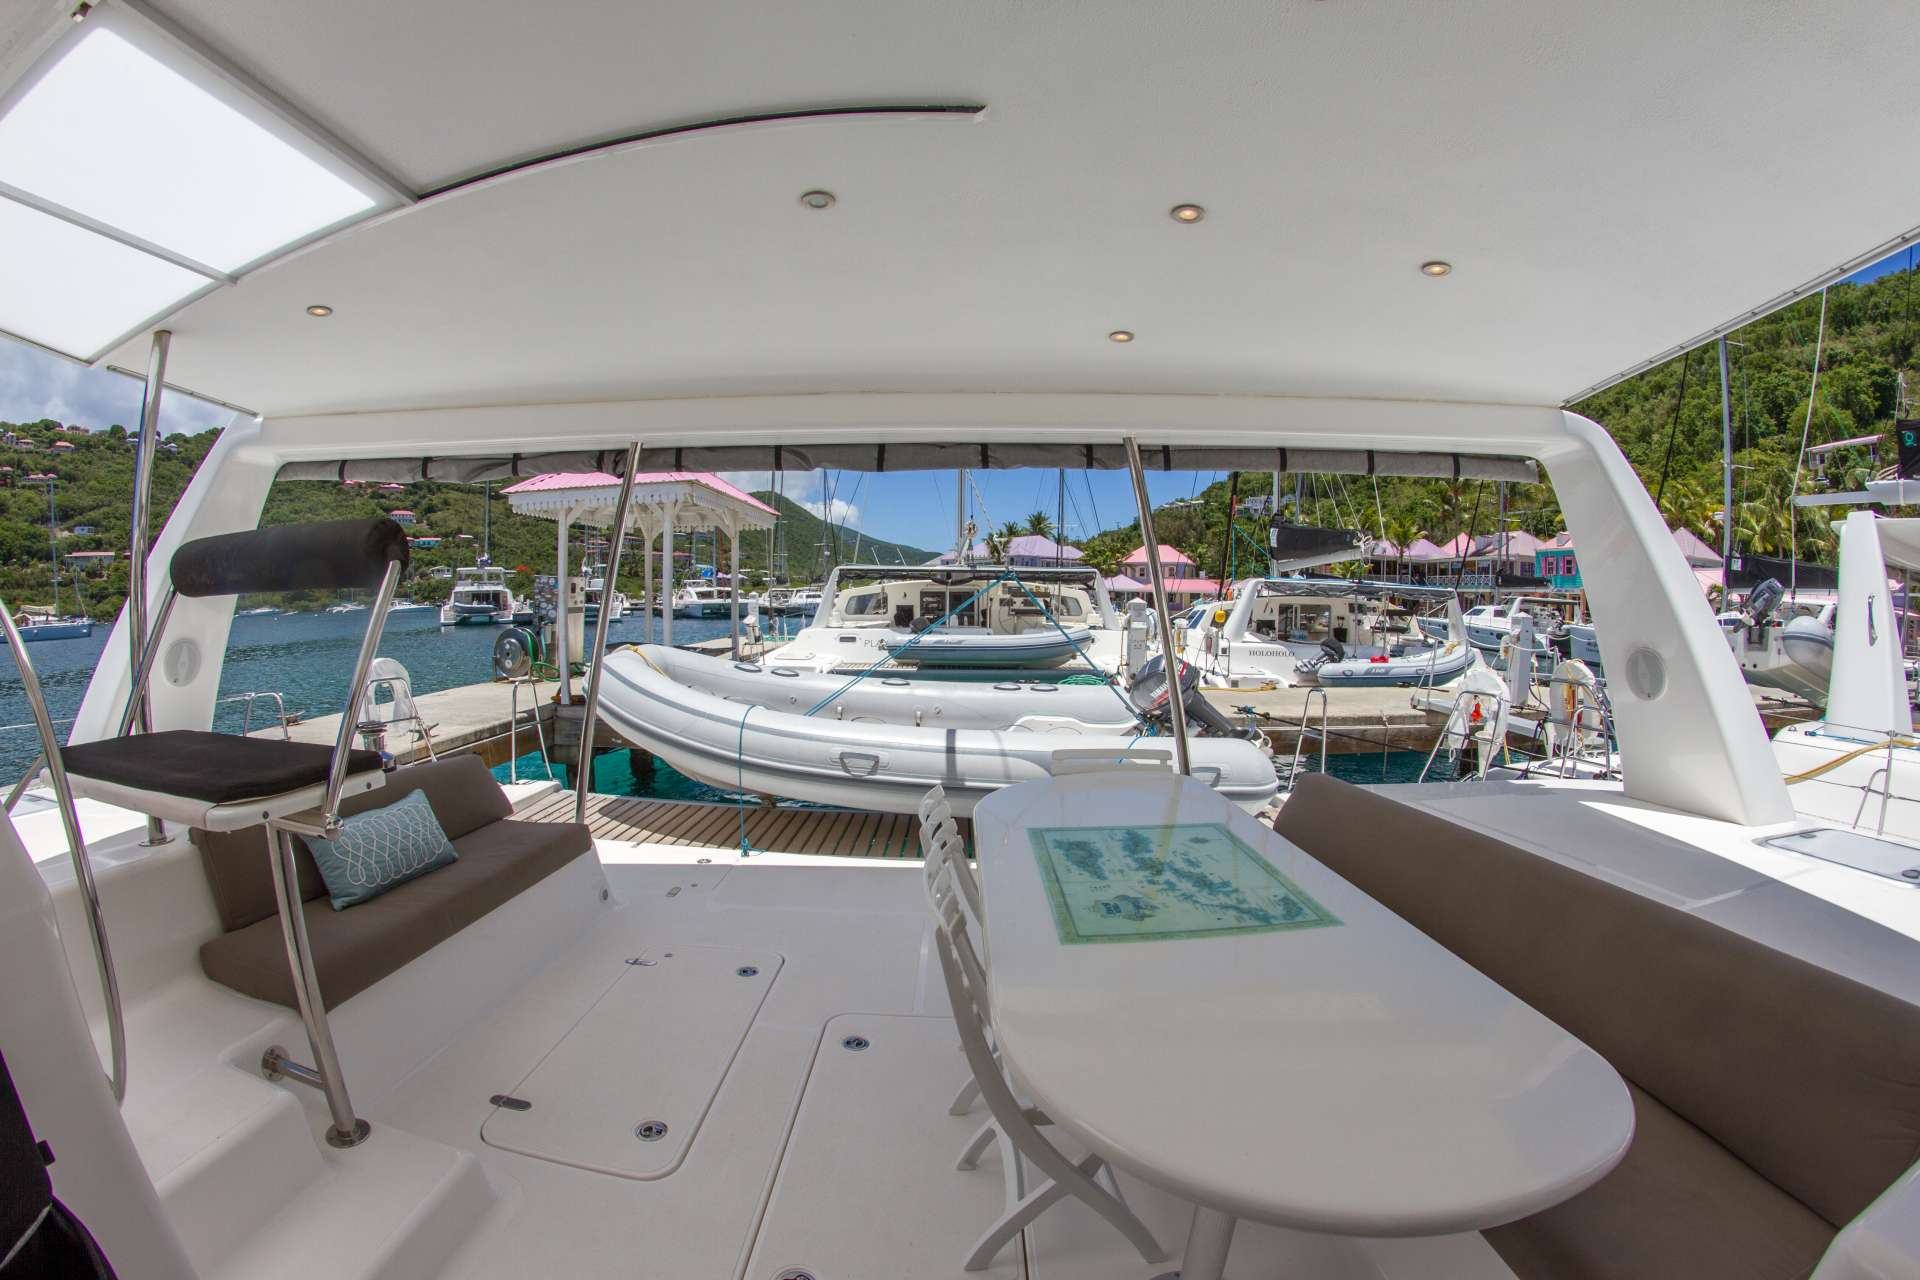 Yacht charter Voyage 520